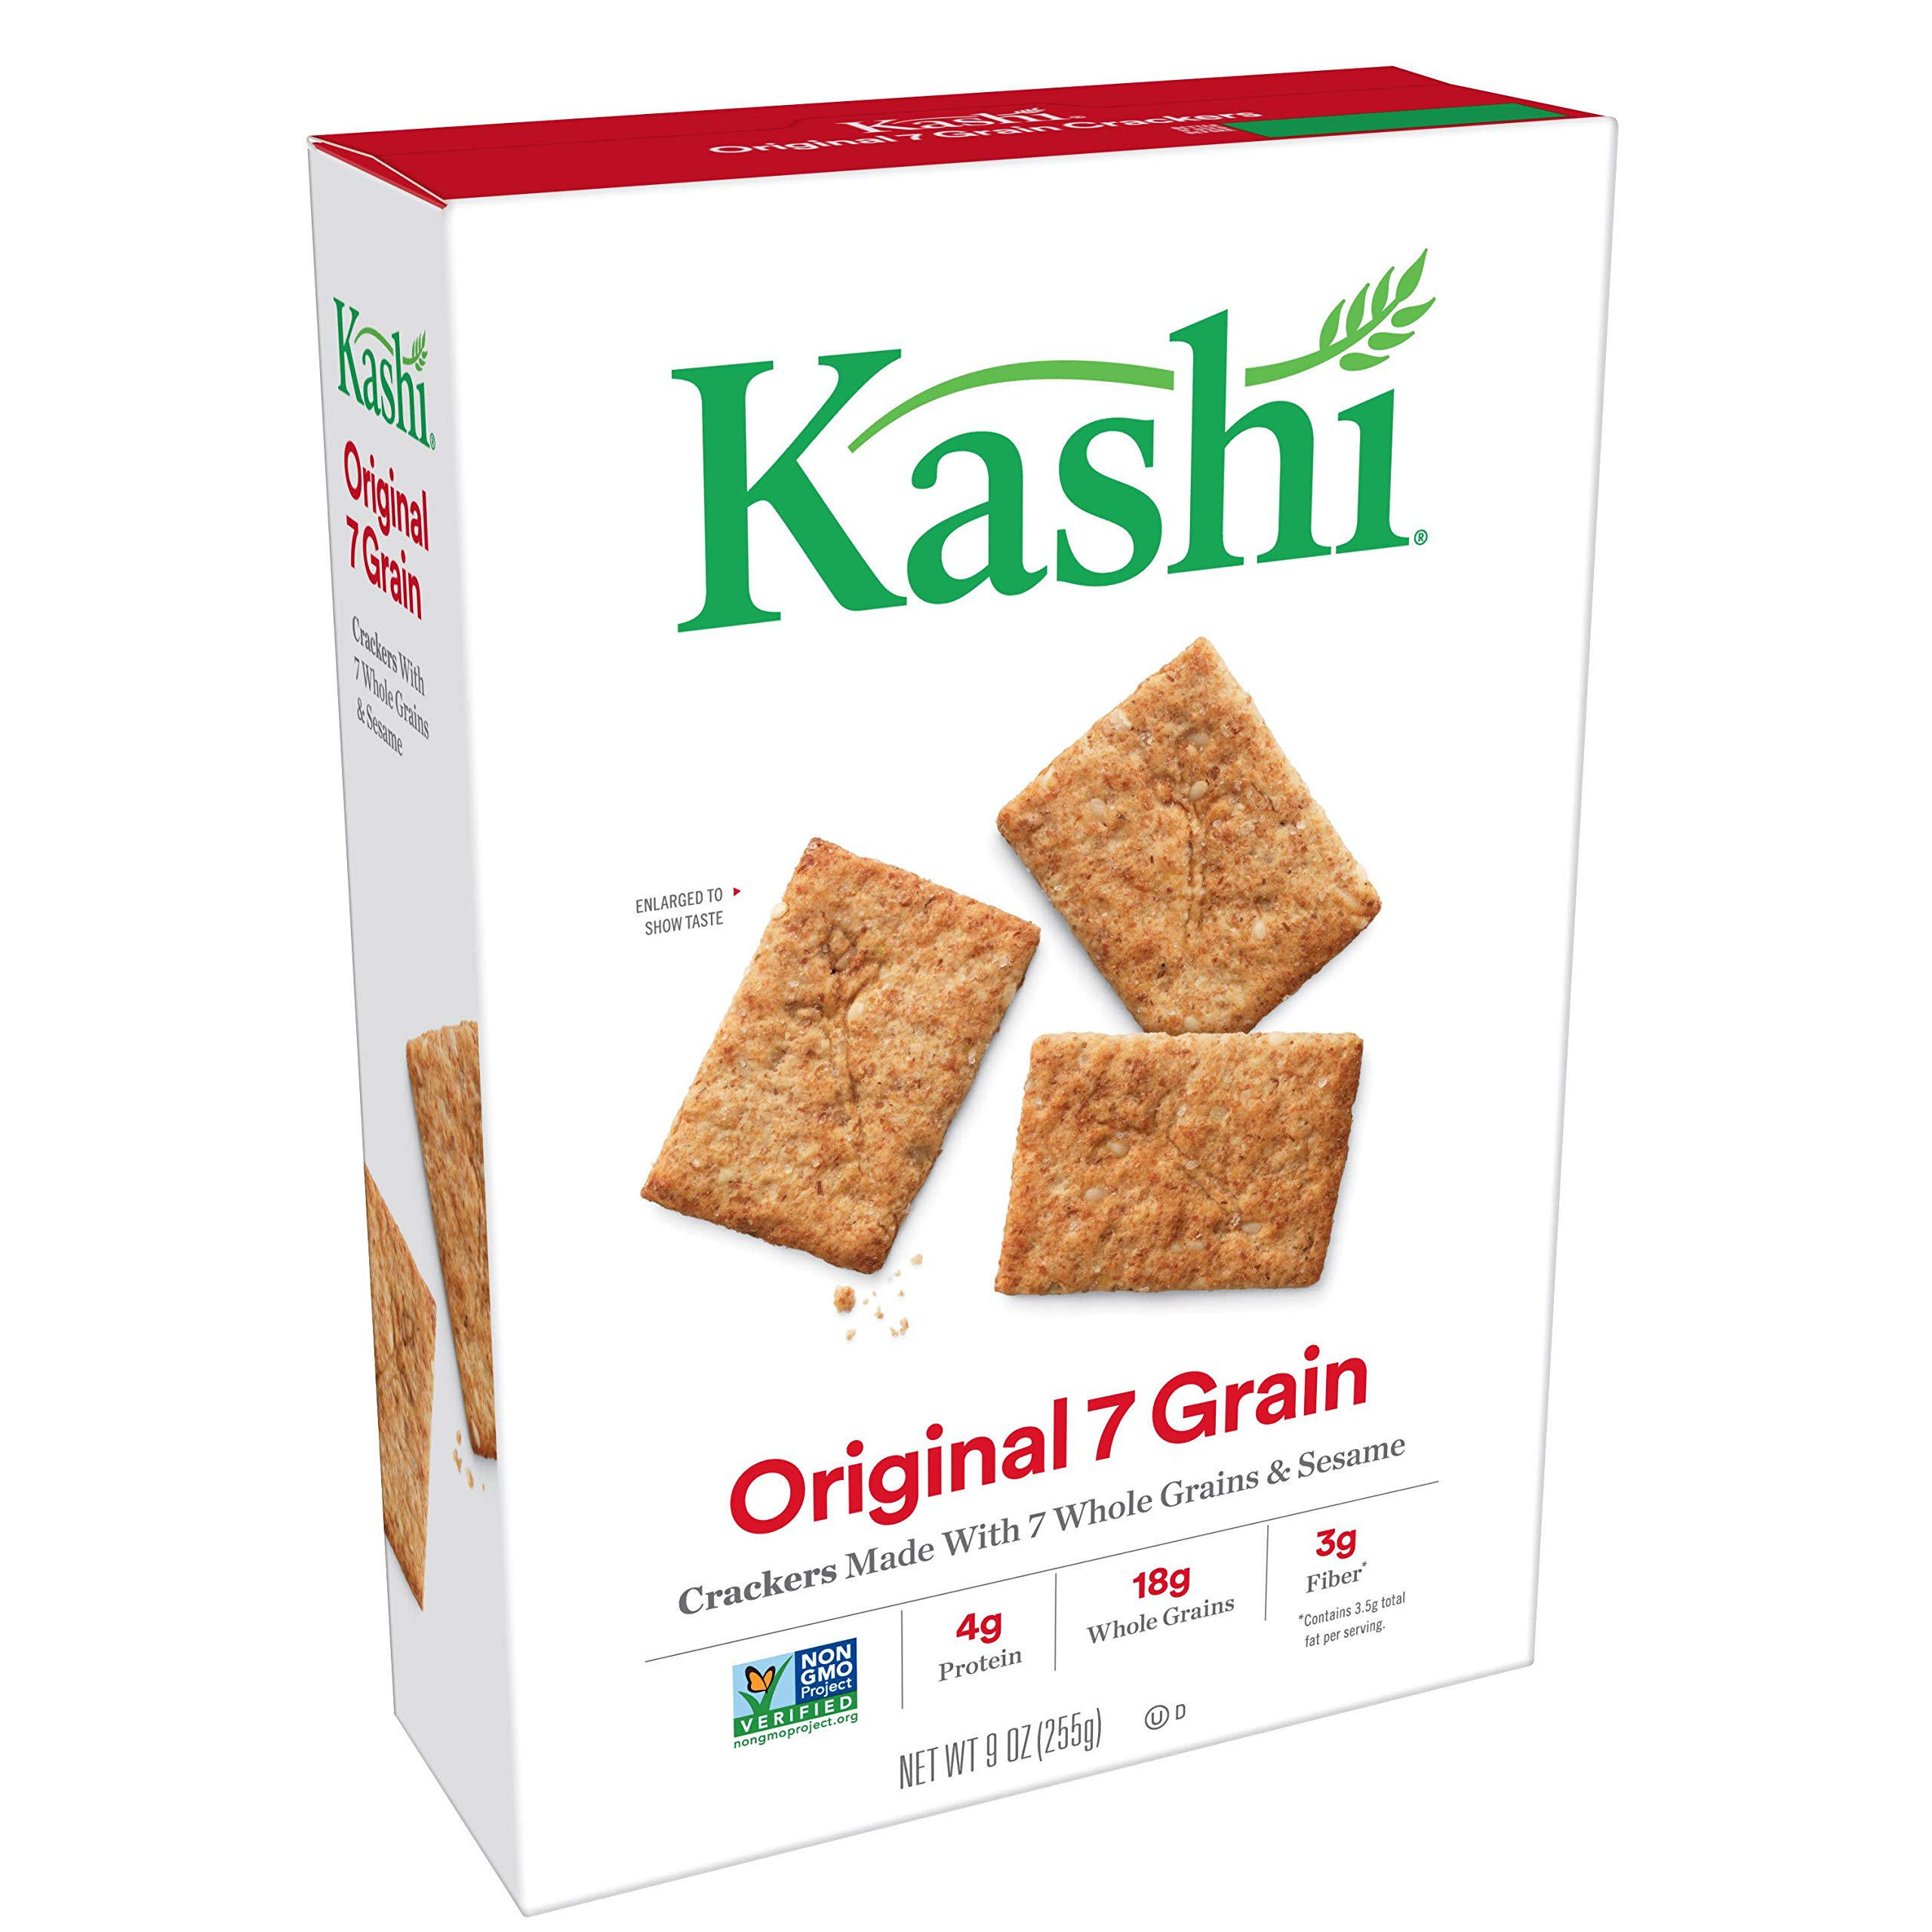 (Discontinued By Manufacturer) Kashi, Crackers, Original 7 Grain, Non-GMO Project Verified, 9 oz by Kashi